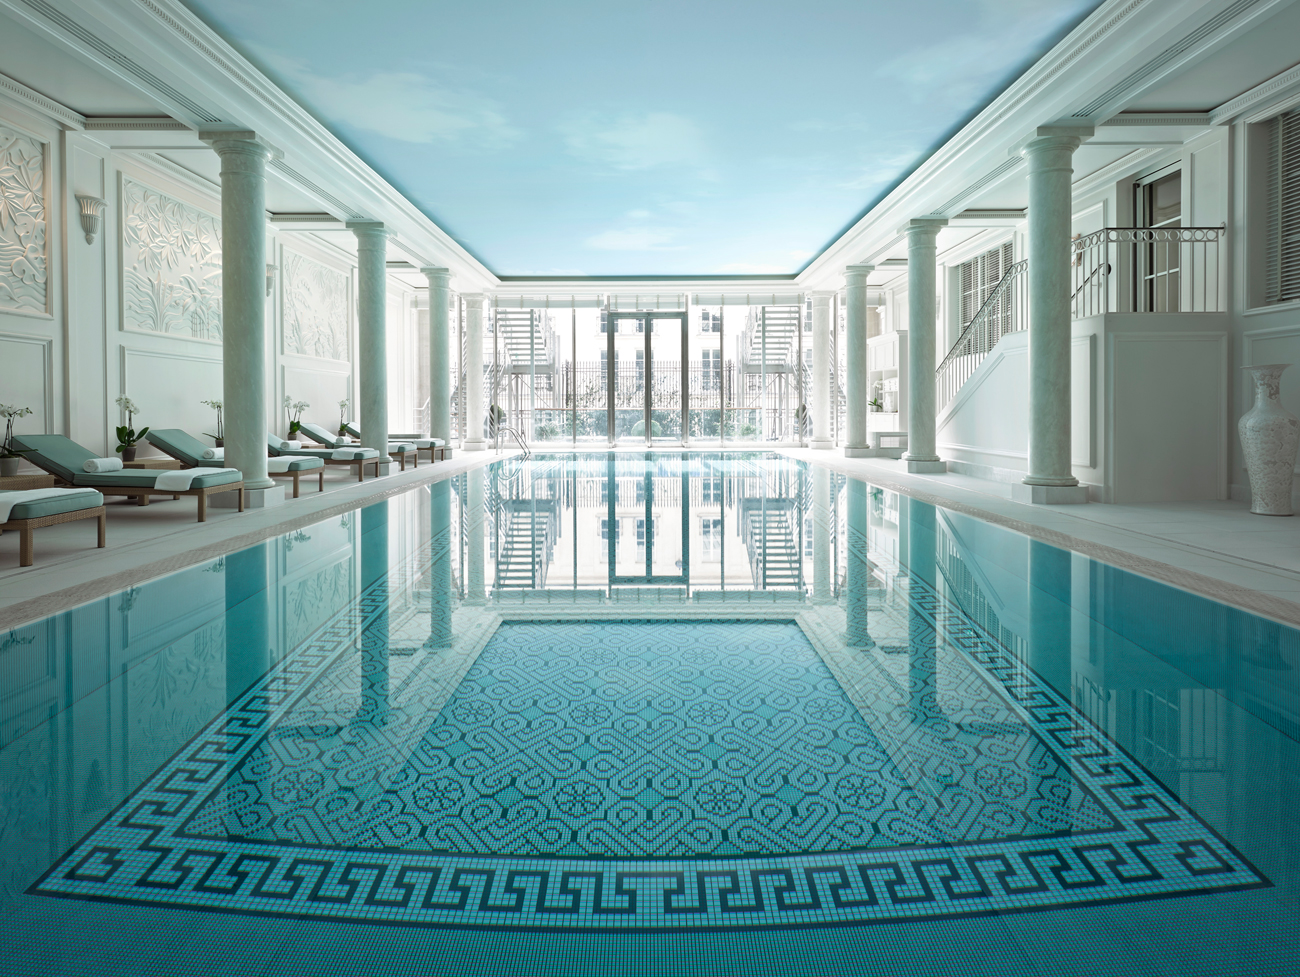 Shangri La Swimming Pool Chi The Spa.jpg